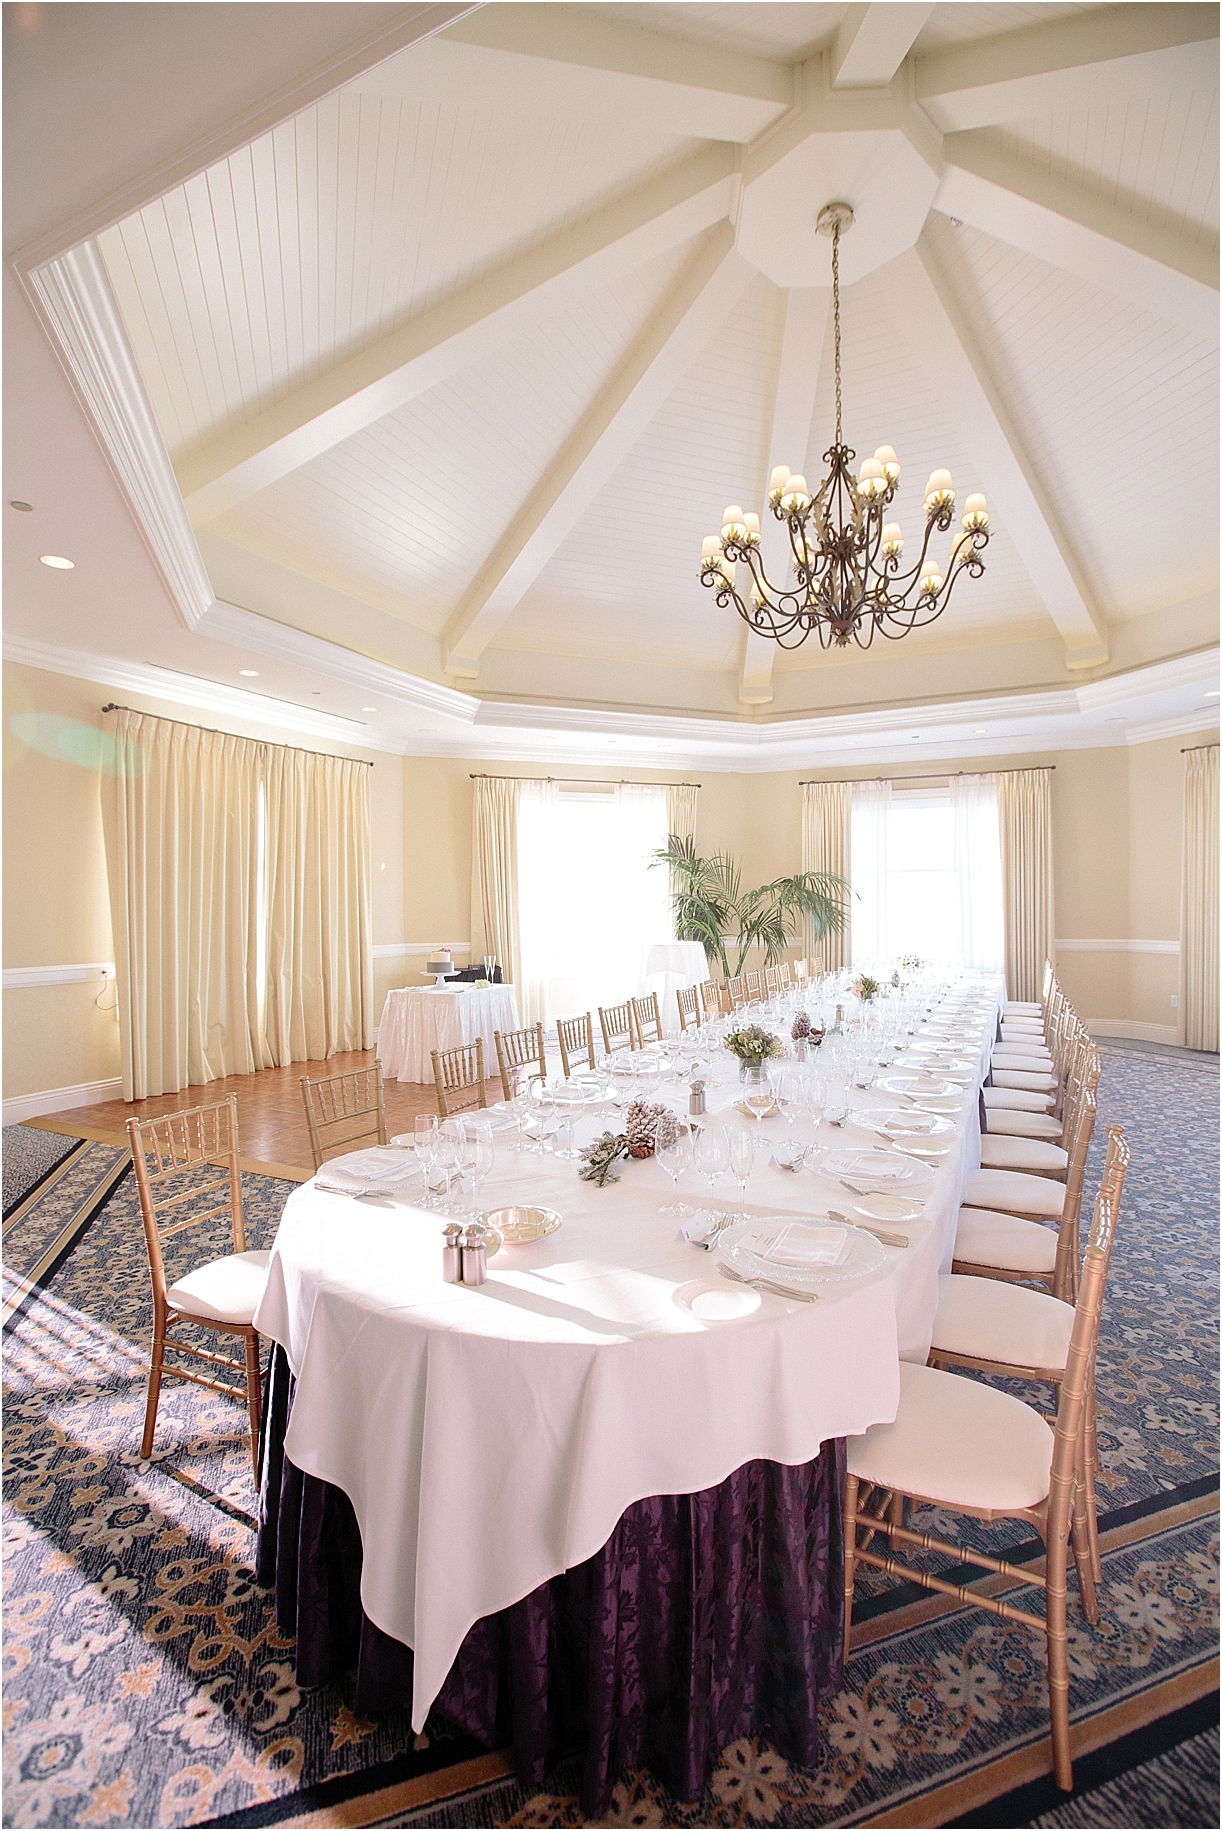 Coastal California Wedding Venues | Hill City Bride Destination Wedding Blog